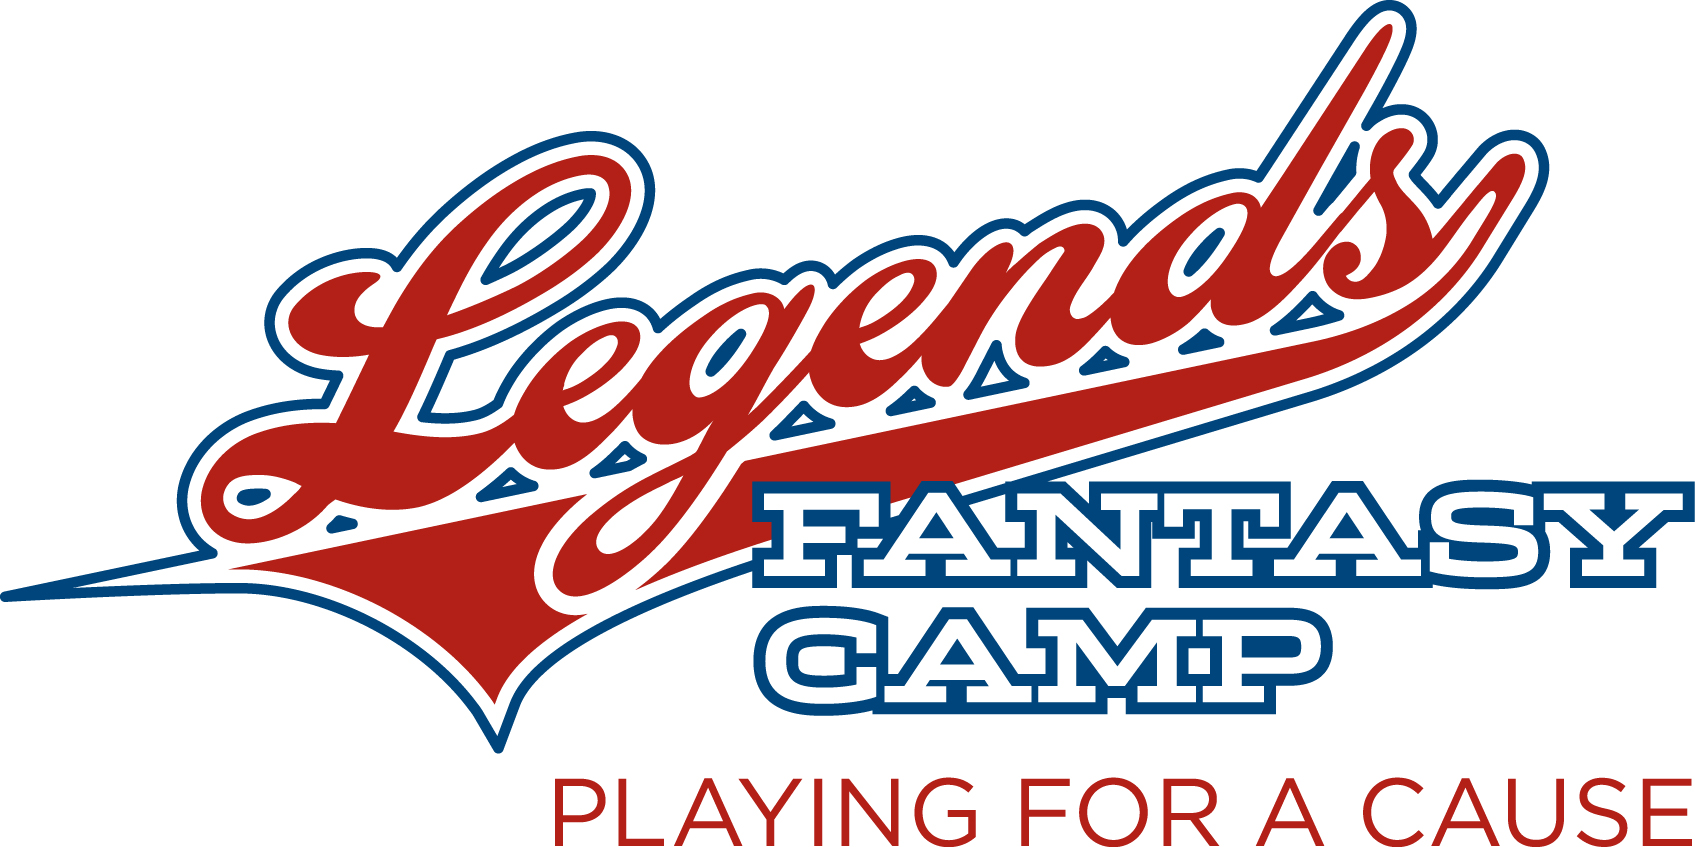 http://www.joeniekrofoundation.com/aneurysms/a-week-with-the-legends/attachment/legends-logo-color-slogan/